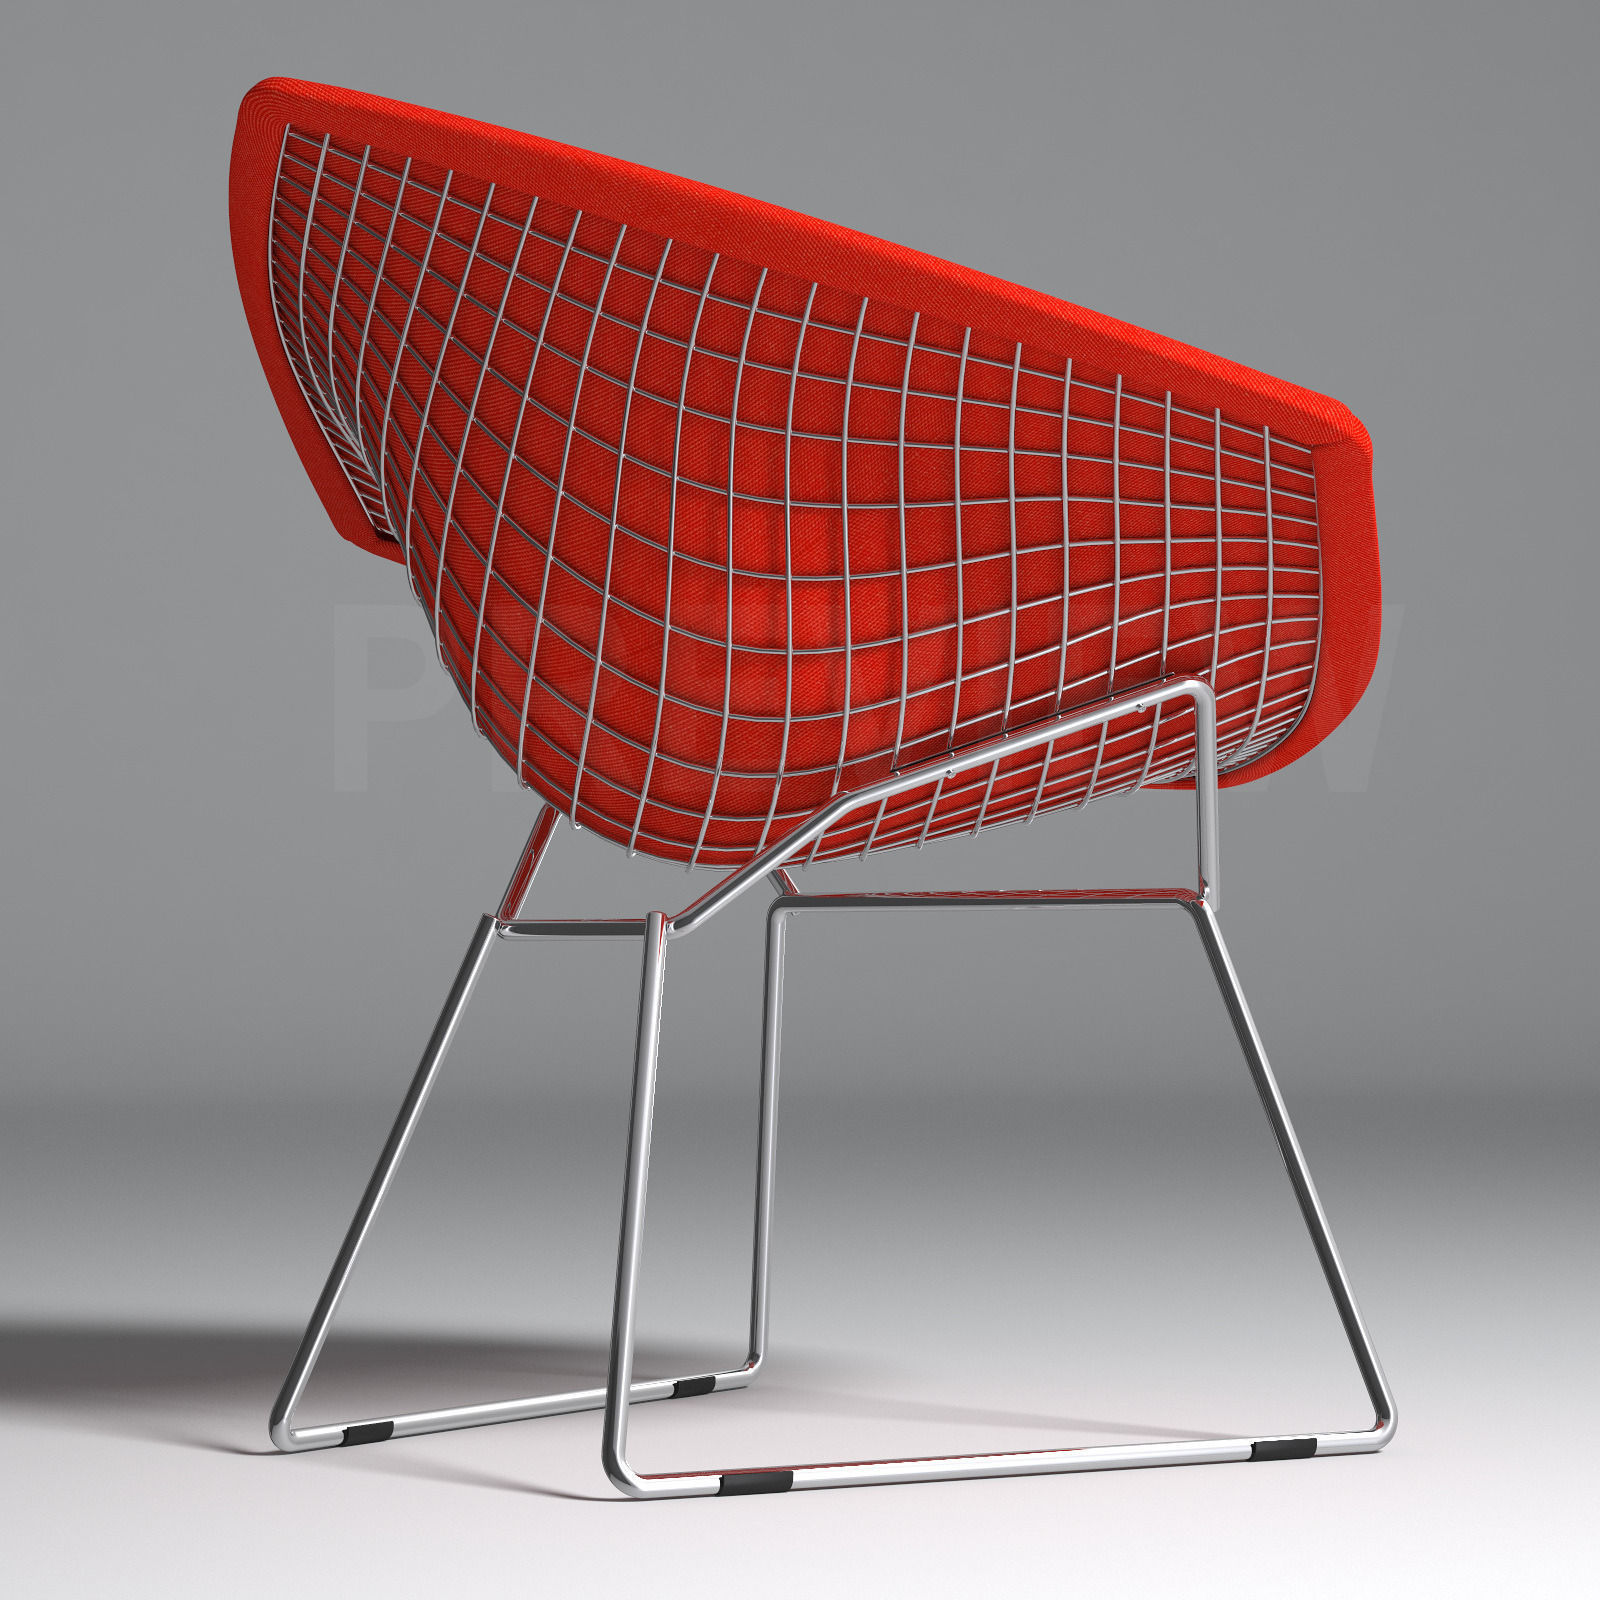 Perfect ... Bertoia Diamond Armchair With Full Cover   Knoll 3d Model Max Obj Fbx 3  ...